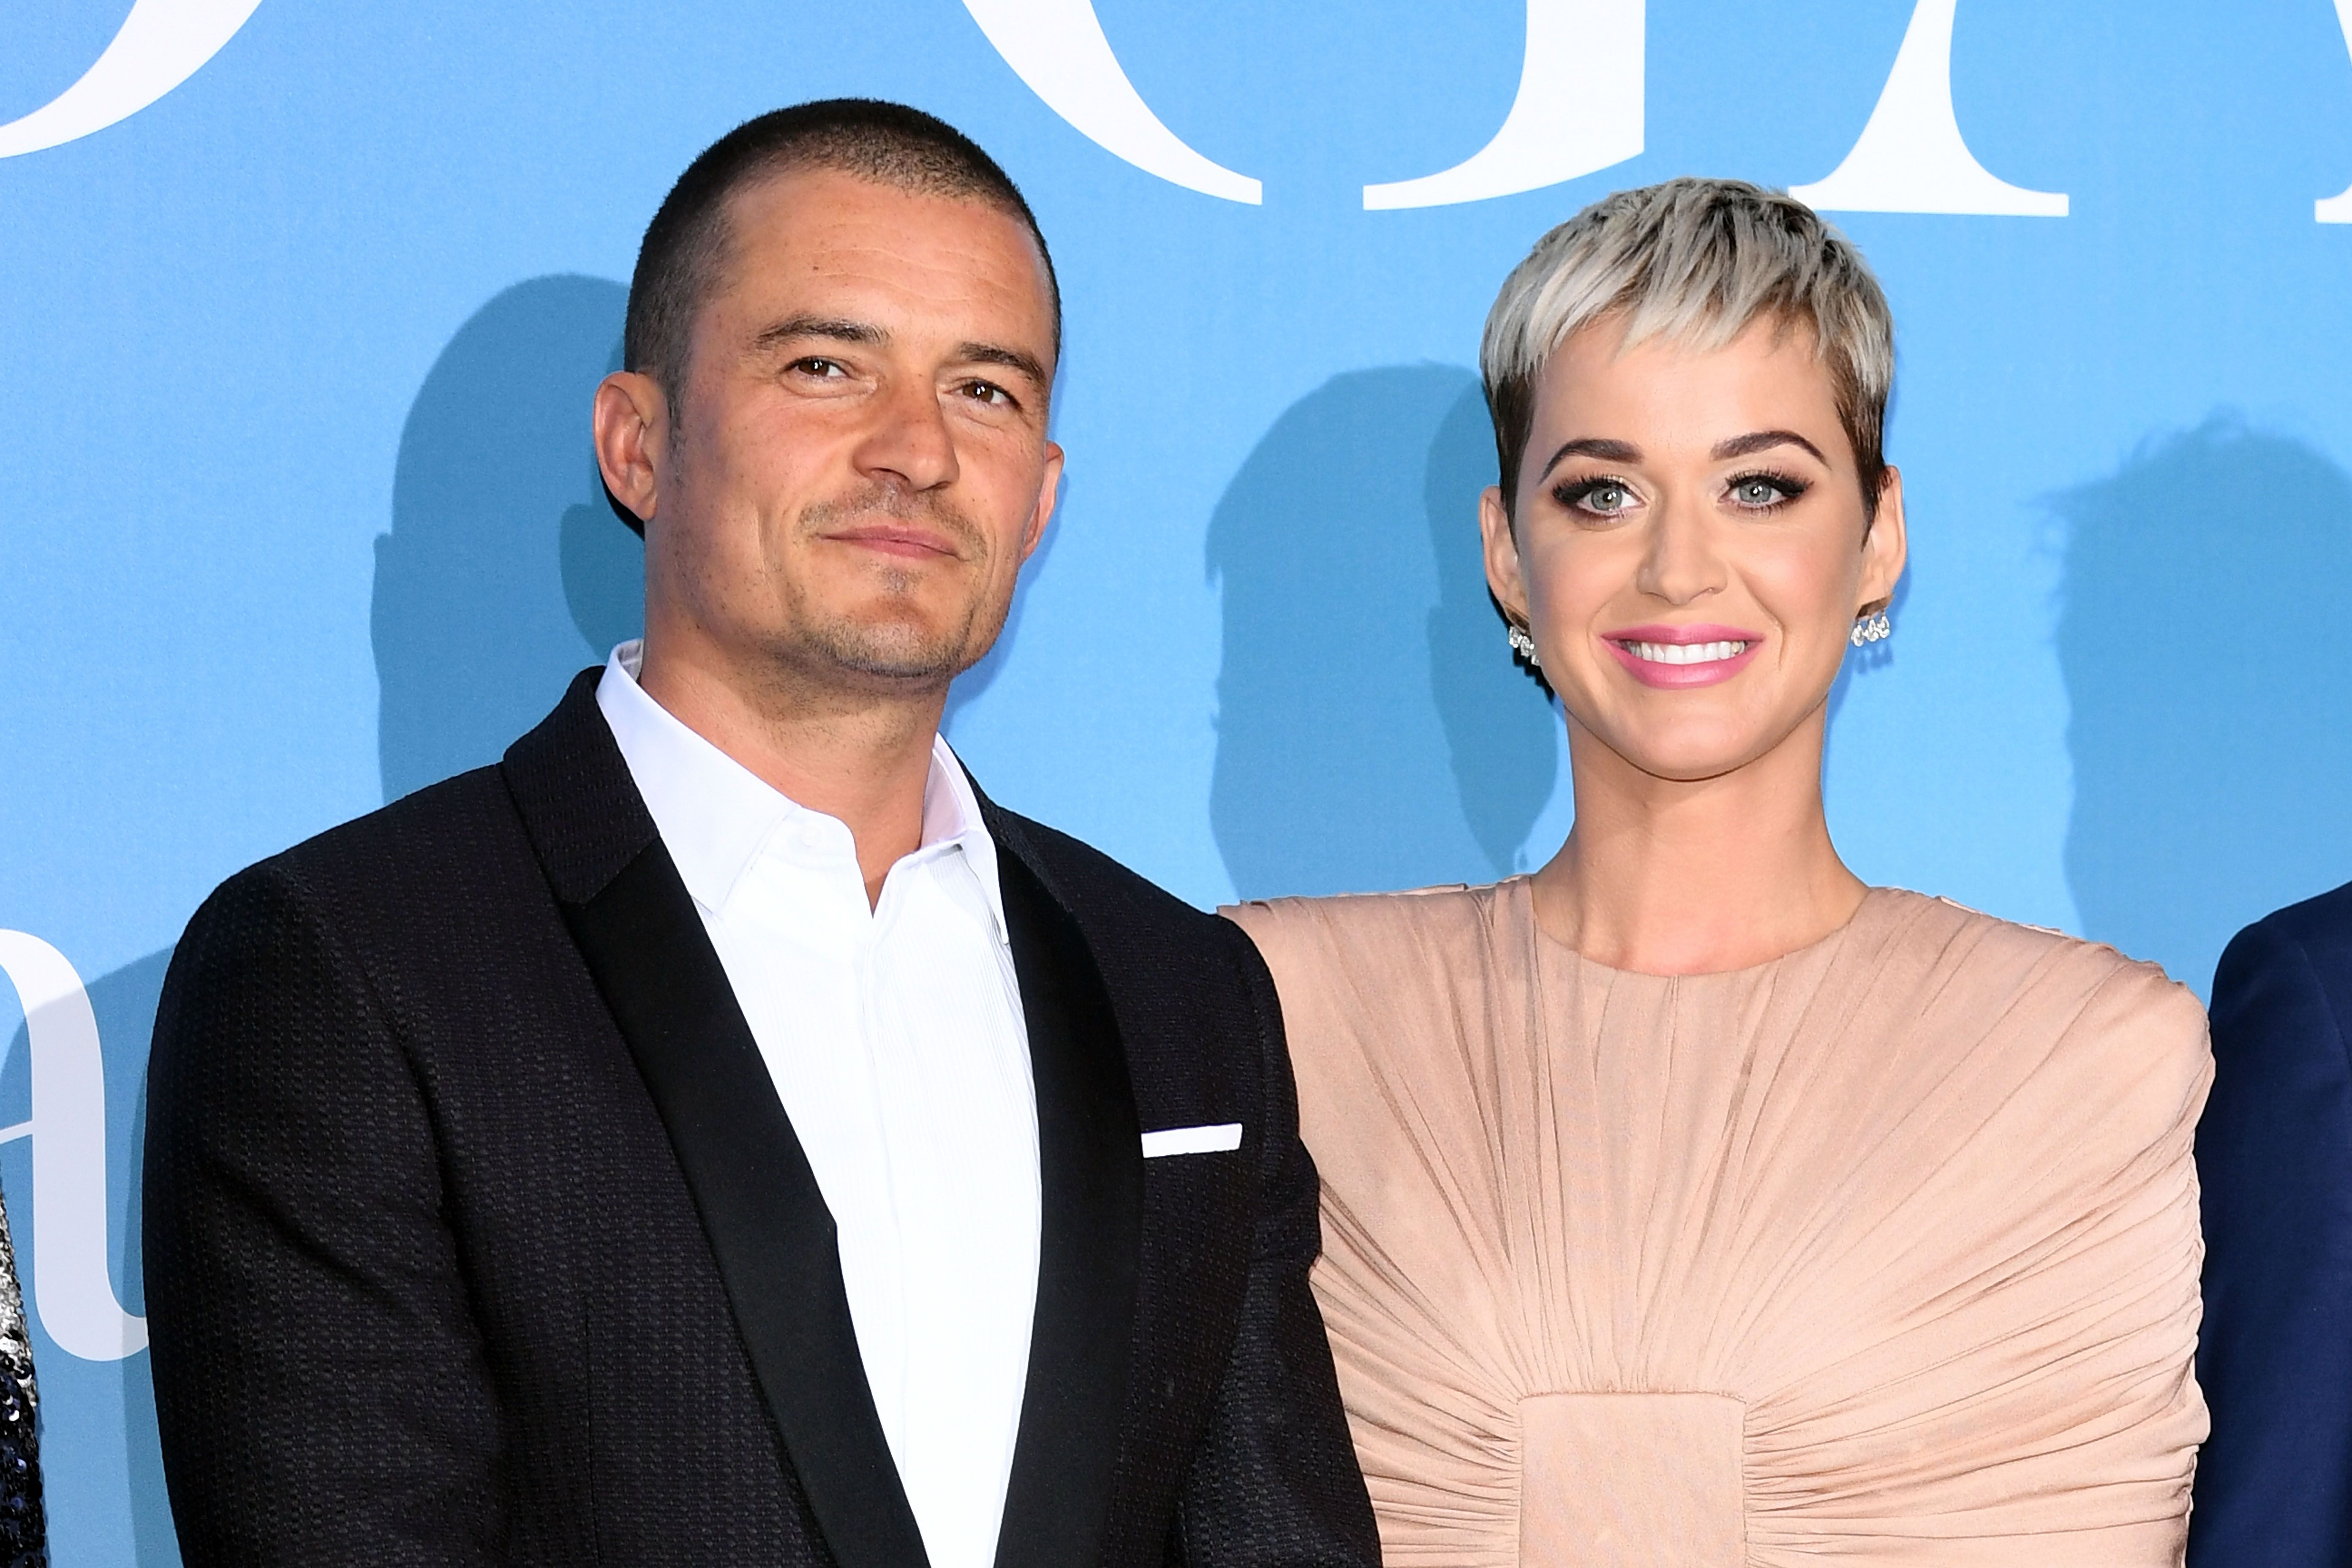 Orlando Bloom and Katy Perry at the Gala for the Global Ocean hosted by H.S.H. Prince Albert II of Monaco on September 26, 2018, in Monte-Carlo, Monaco   Photo: Daniele Venturelli/Getty Images